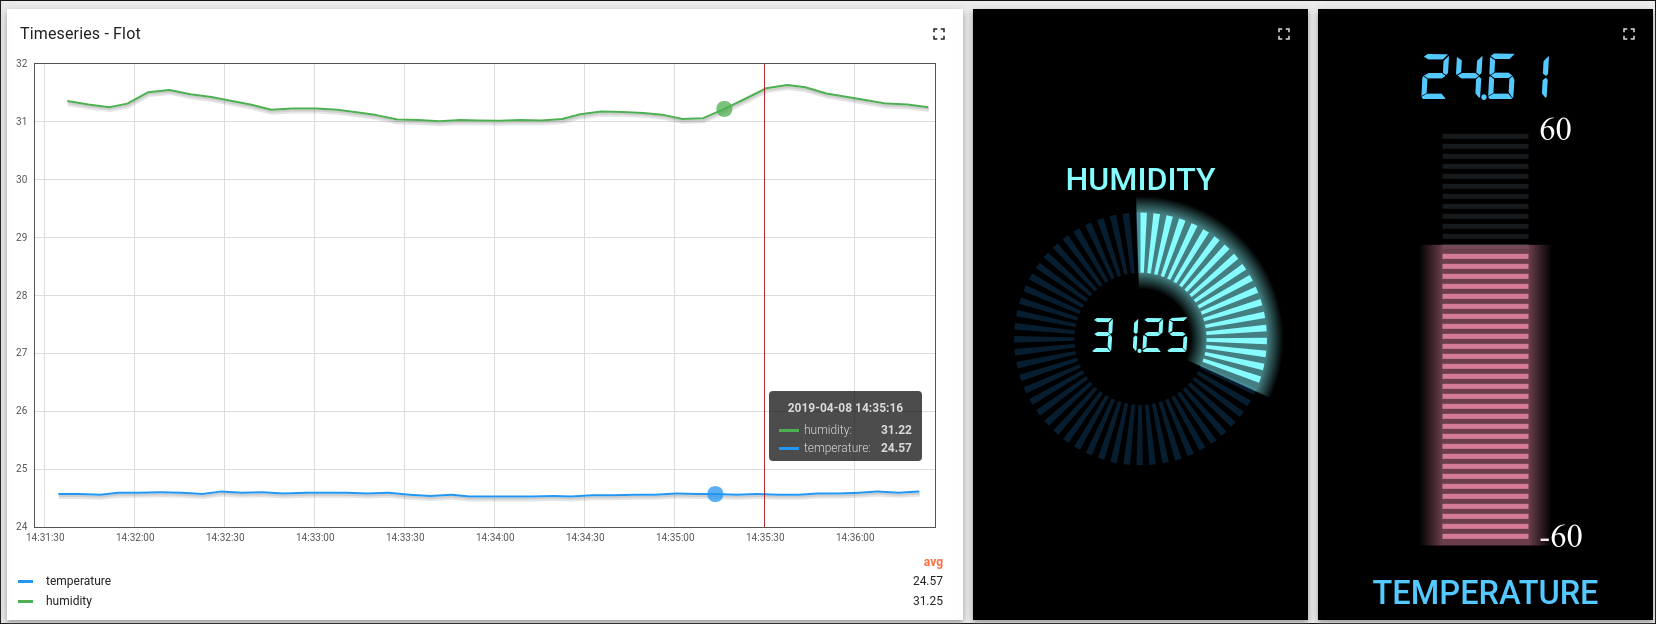 Humidity and temperature upload over HTTP using Arduino UNO